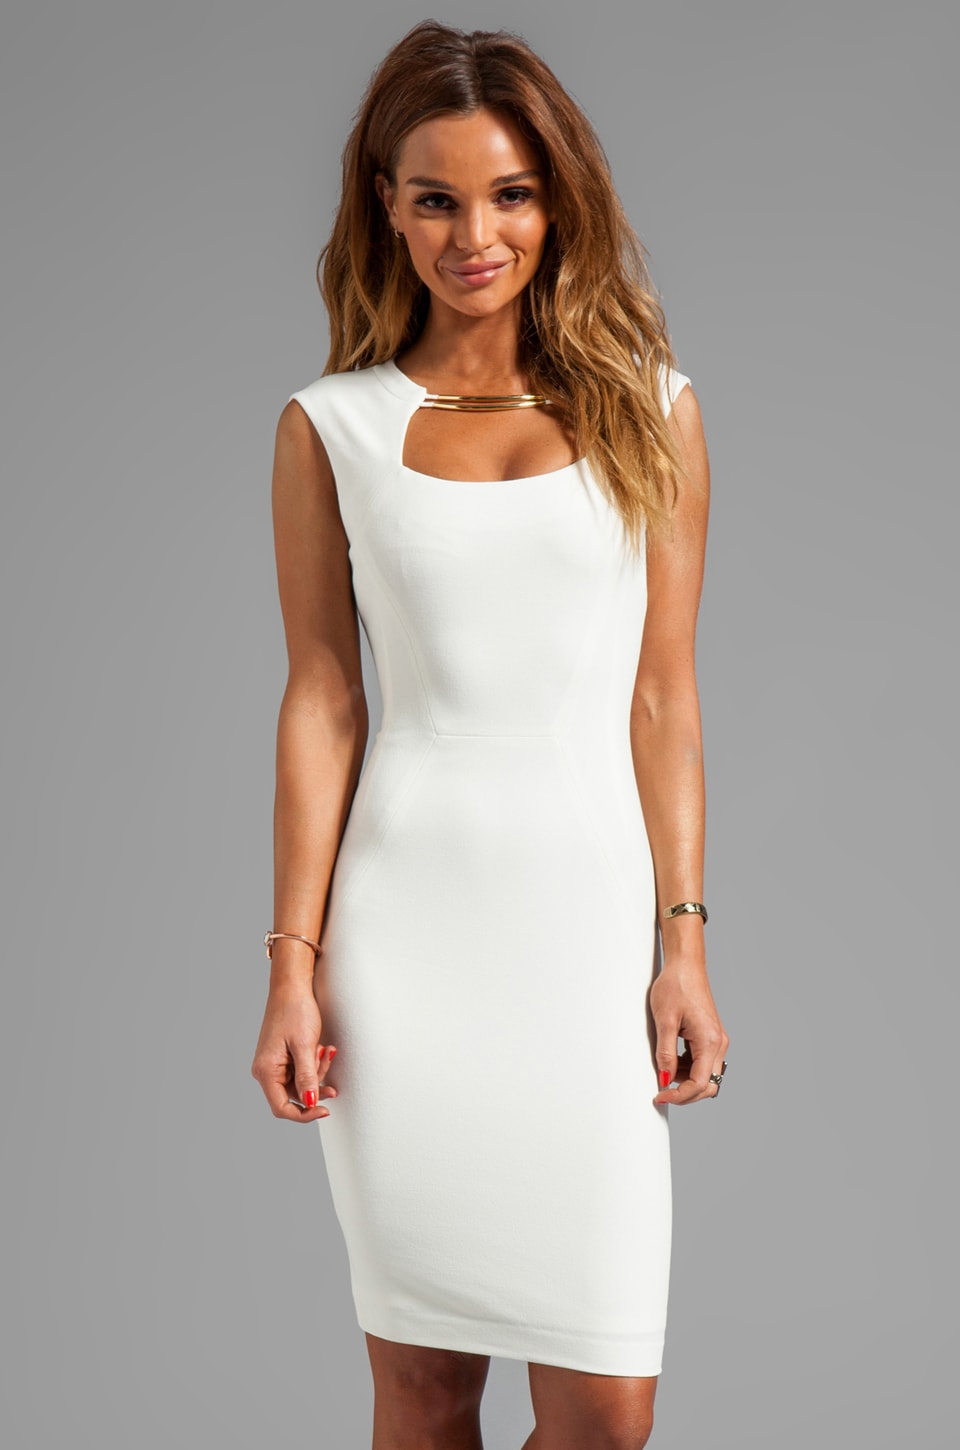 BCBGMAXAZRIA Sleeveless Body Con Dress in Off White